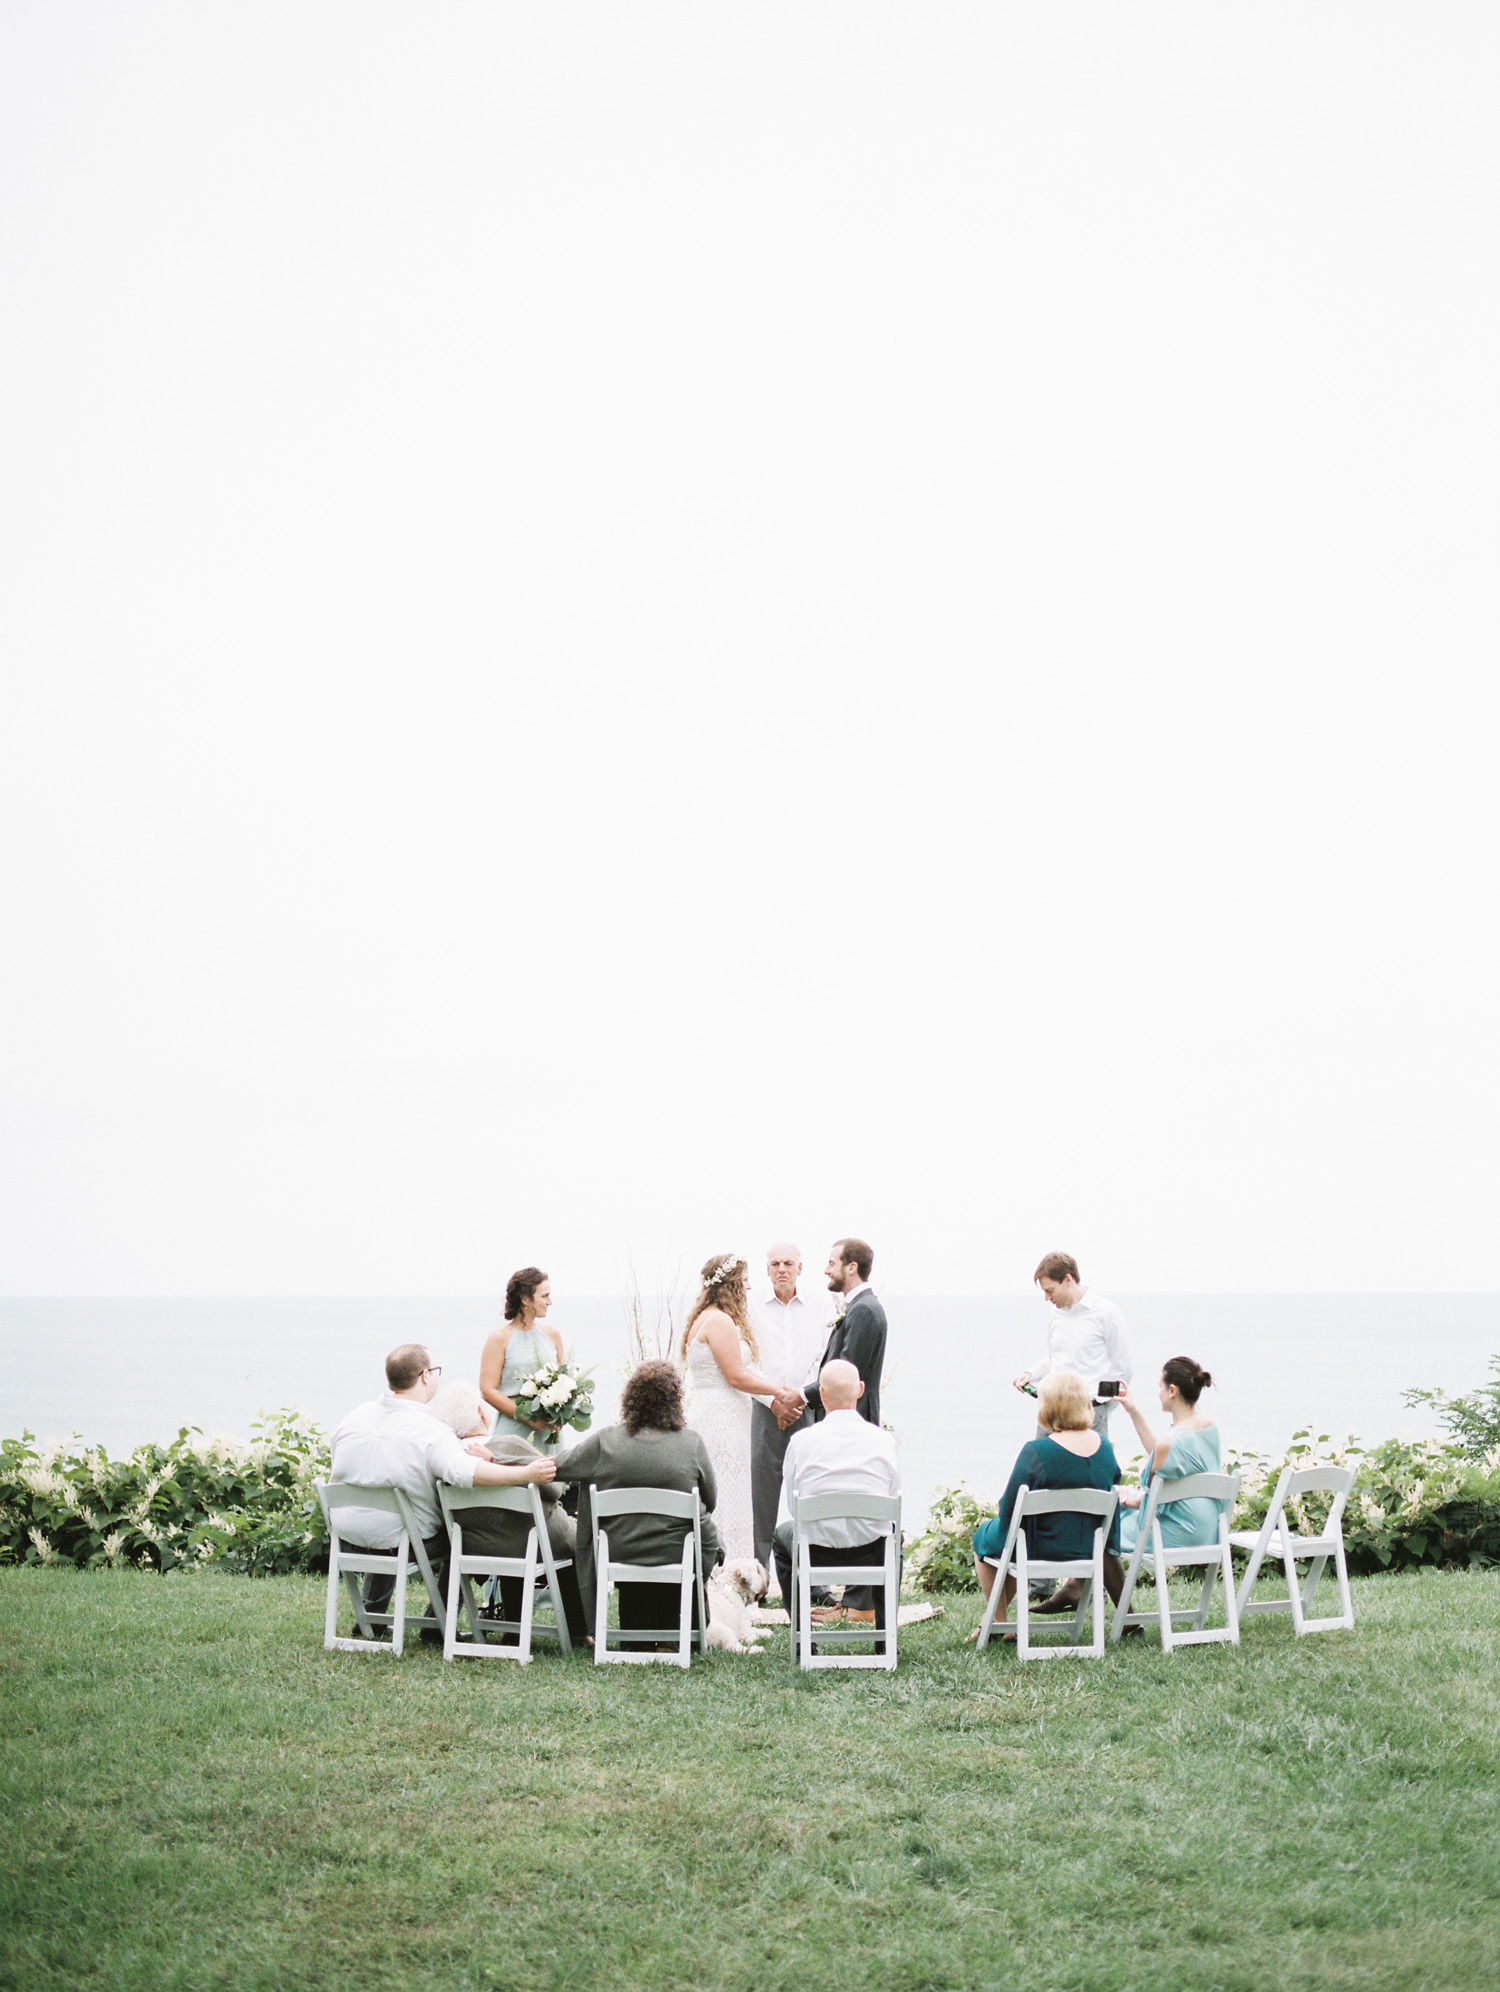 A small, intimate wedding ceremony overlooking Lake Michigan